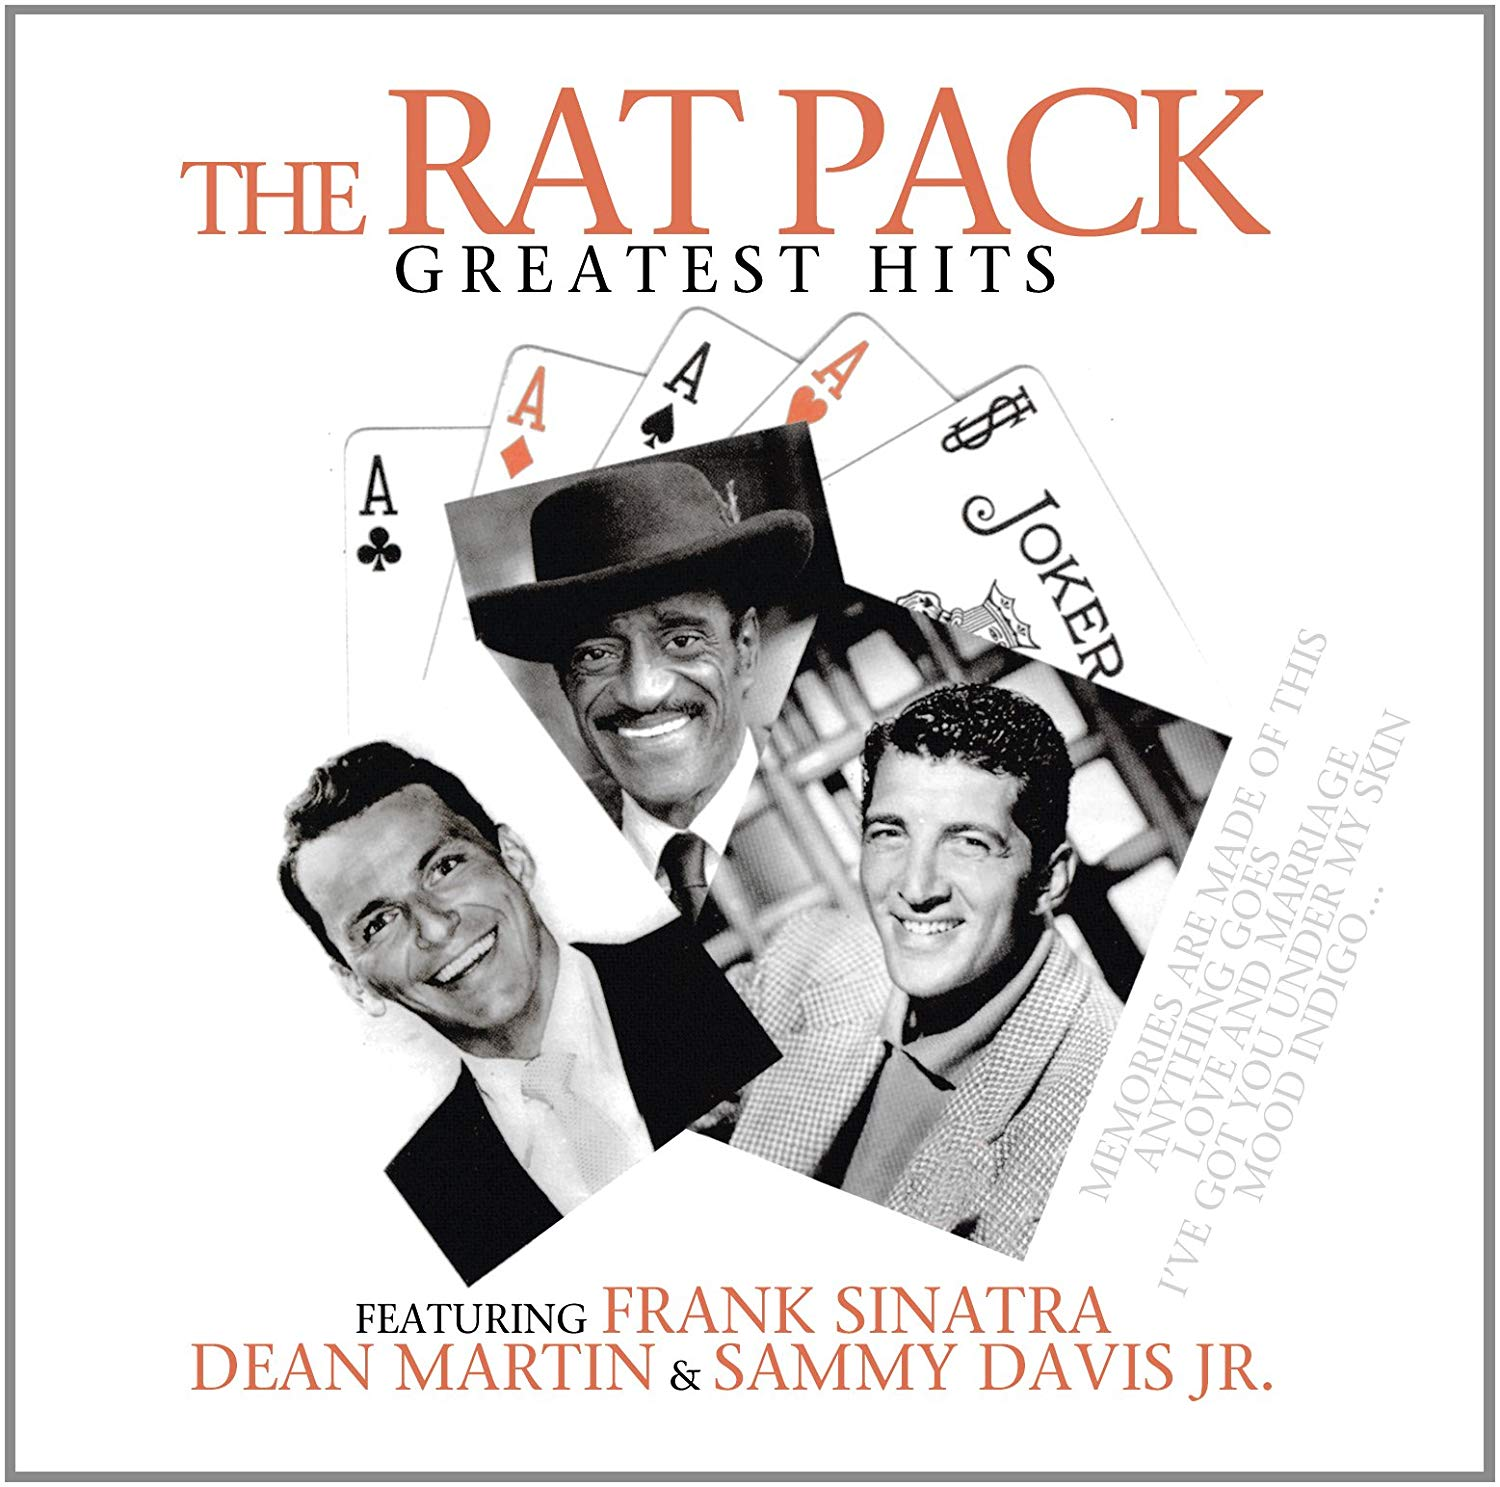 Toxic Toast The Rat Pack Greatist Hits Rsd 2019